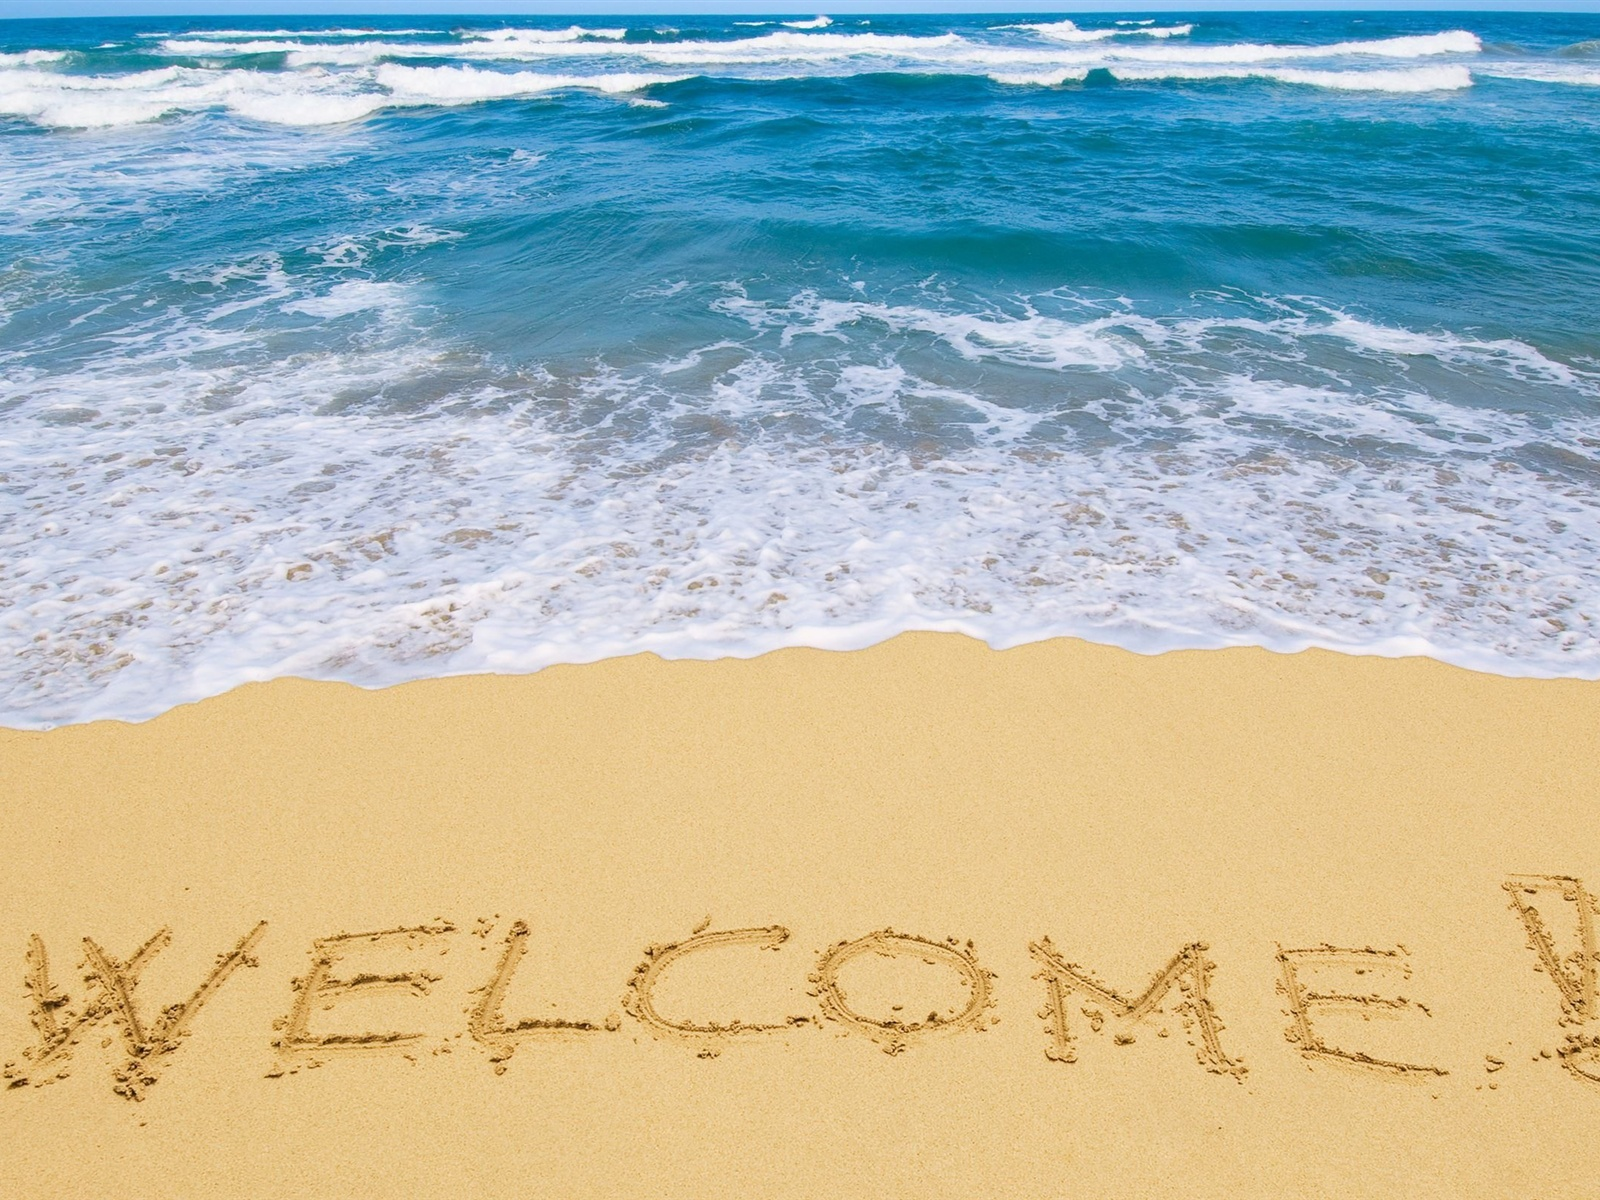 Welcome To The Beach Wallpaper 1600x1200 Resolution